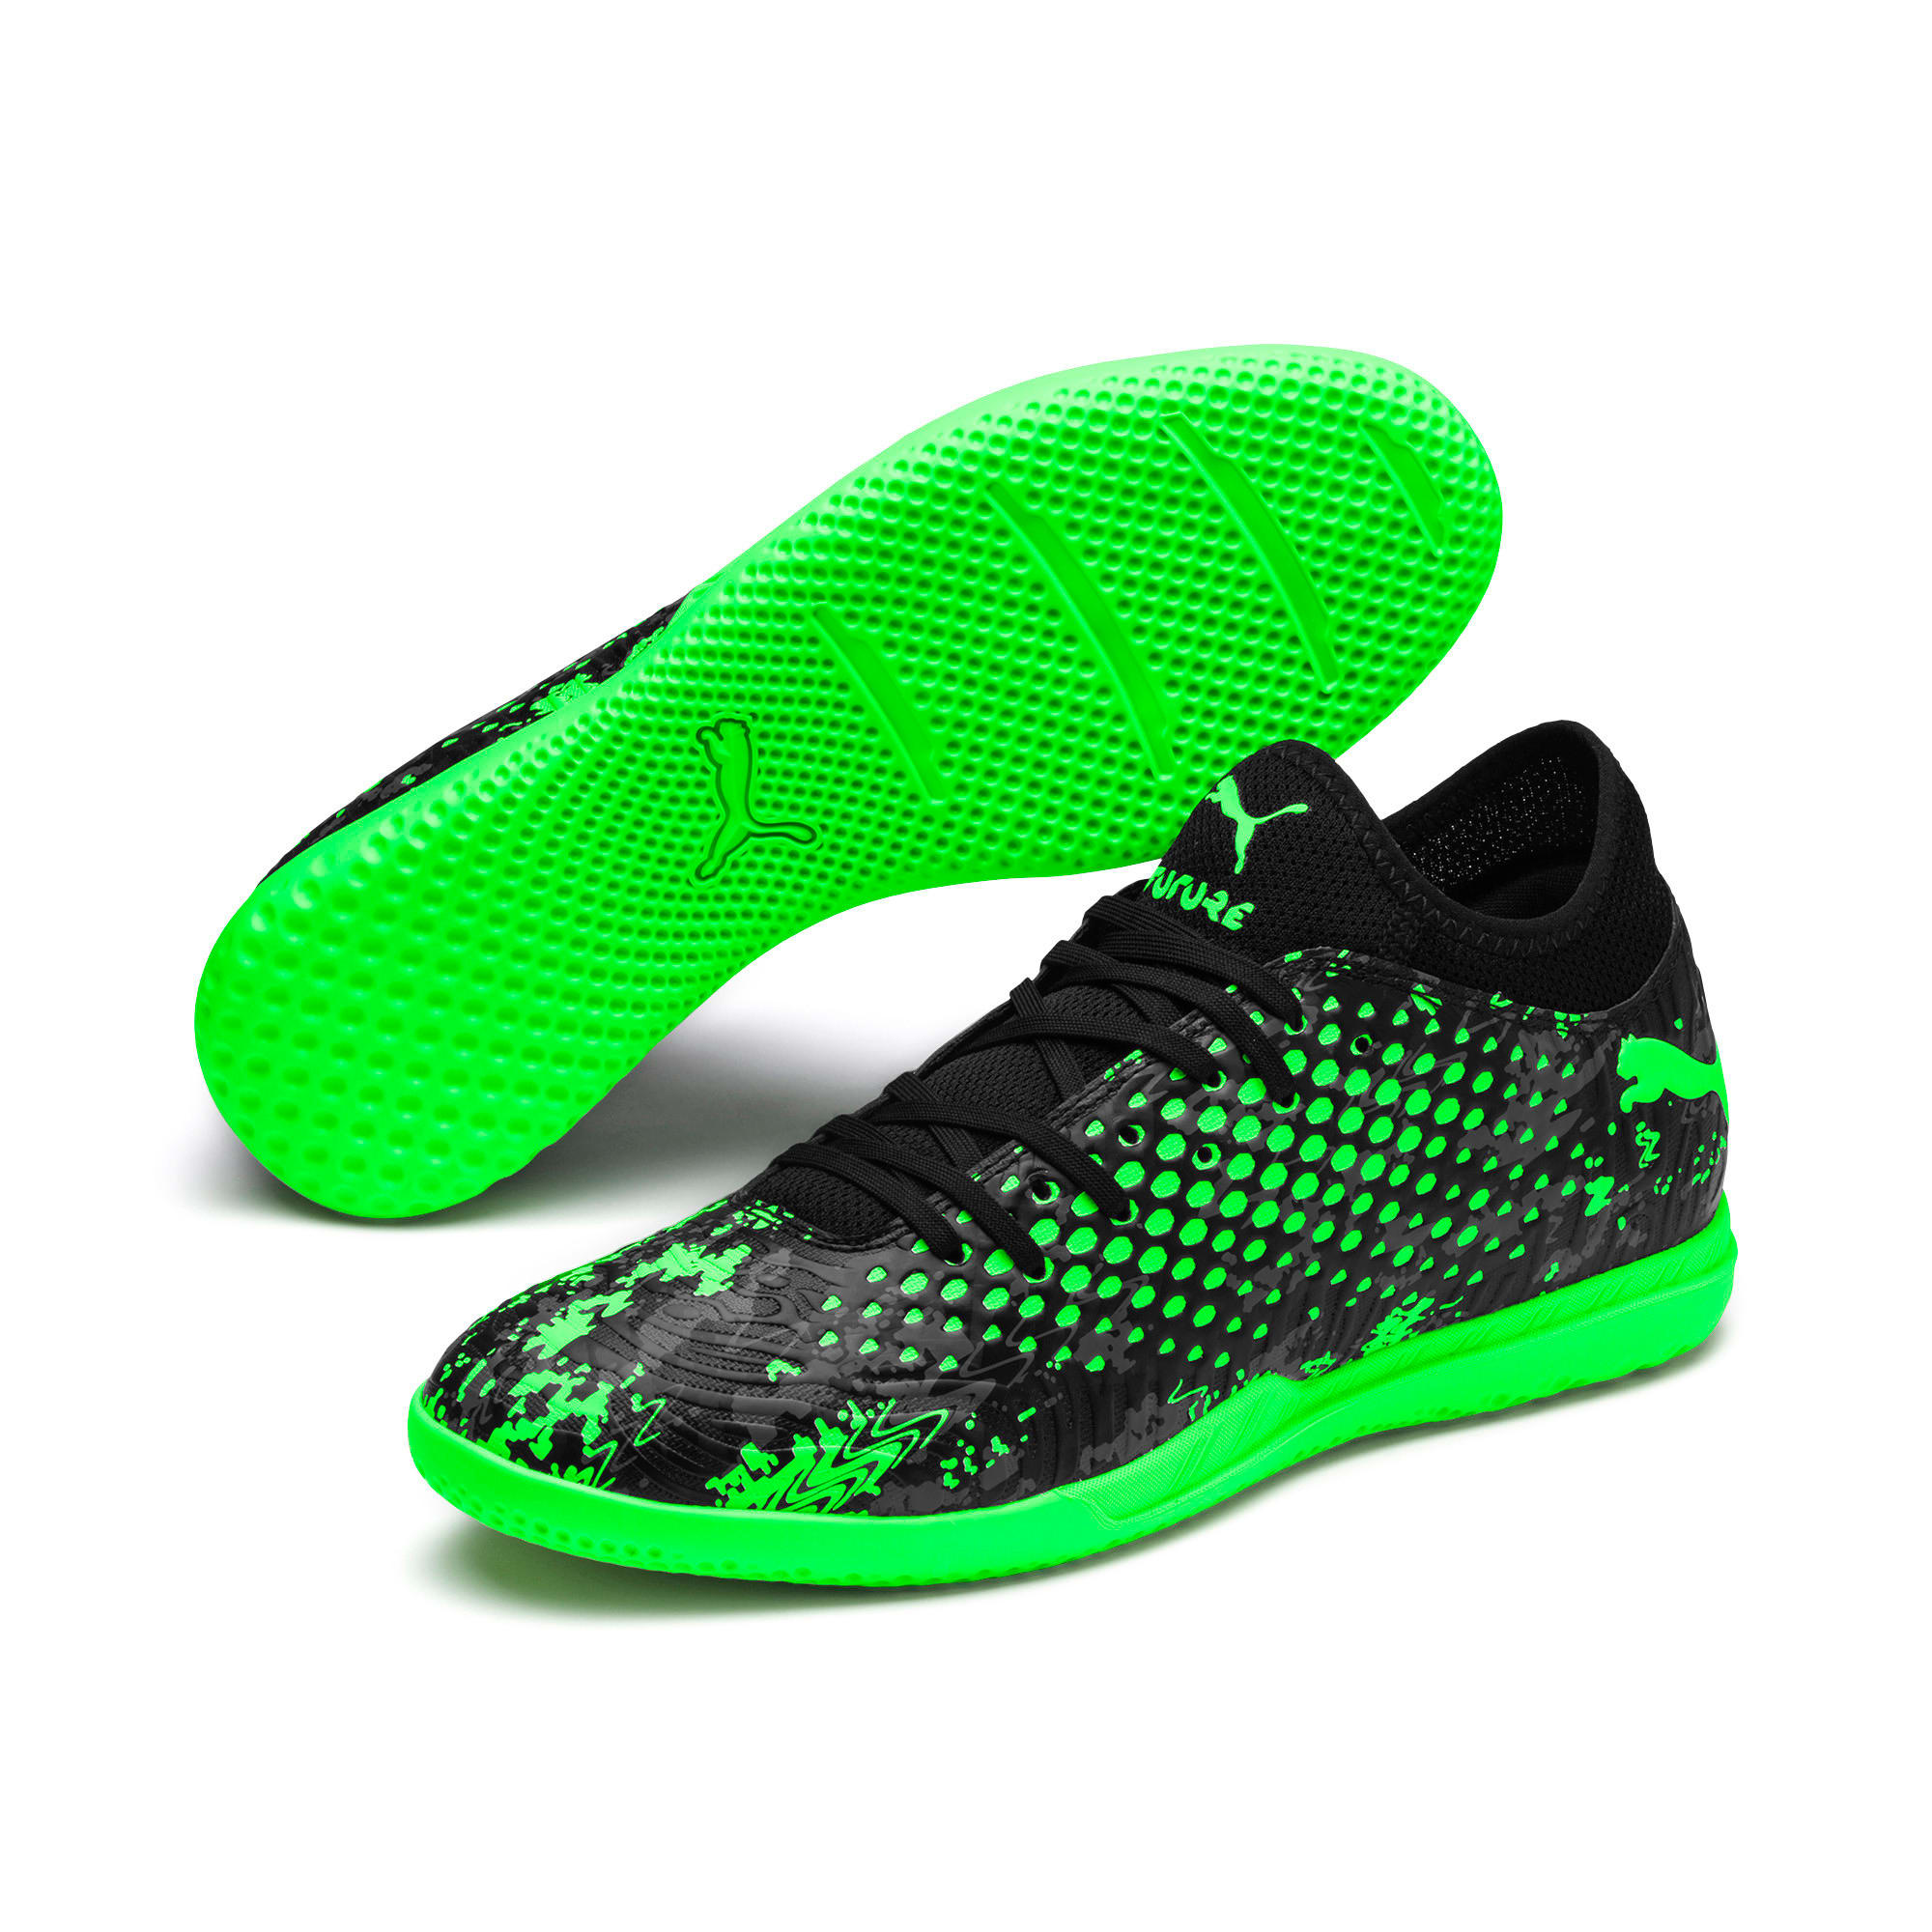 Thumbnail 2 of Chaussure de foot FUTURE 19.4 IT pour homme, Black-Gray-Green Gecko, medium